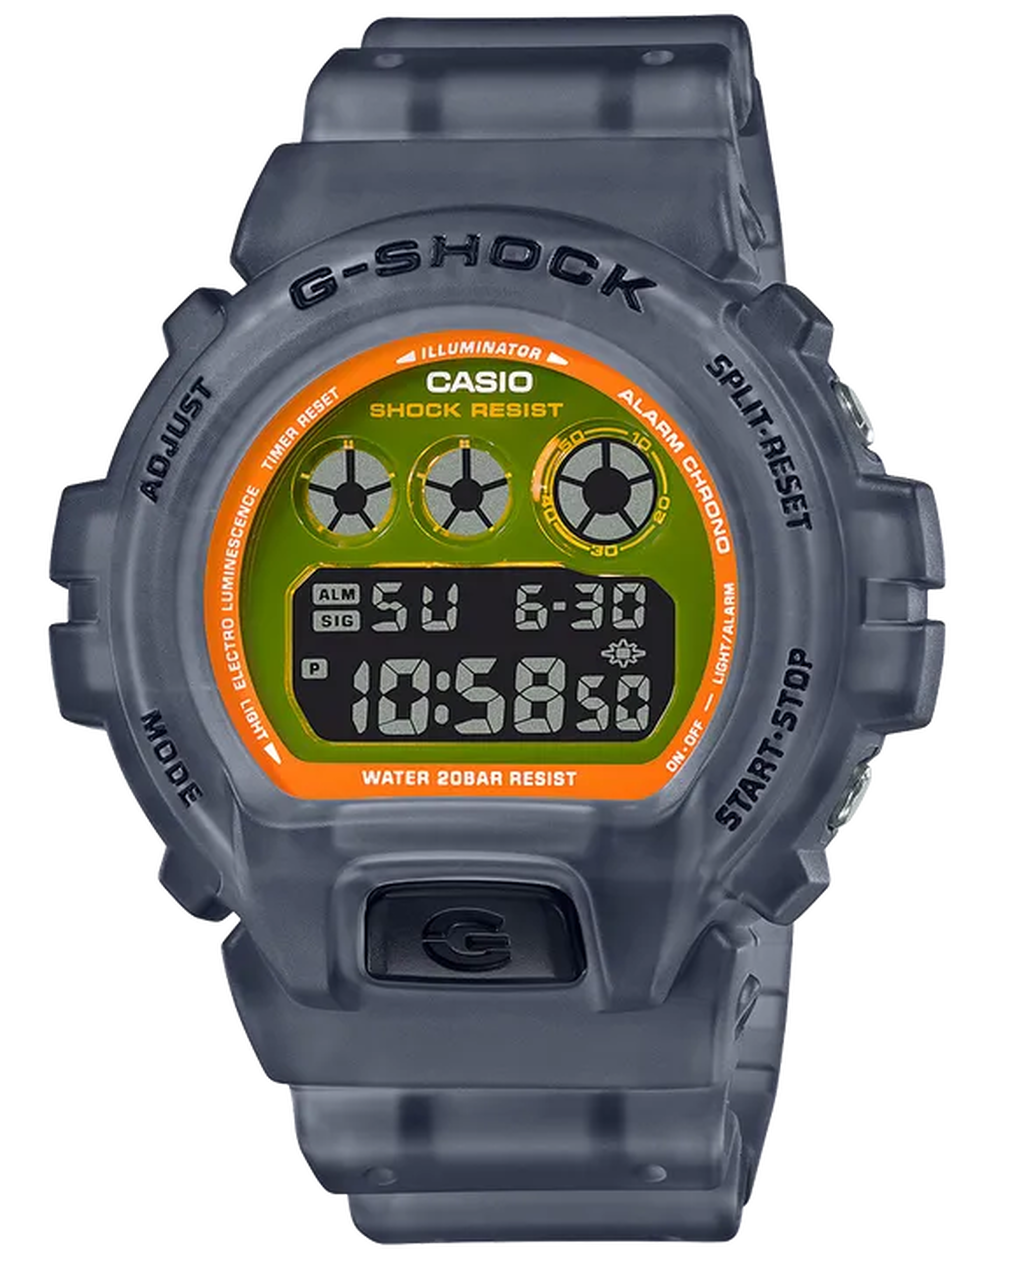 Casio G-SHOCK Digital DW6900LS-1 Watch